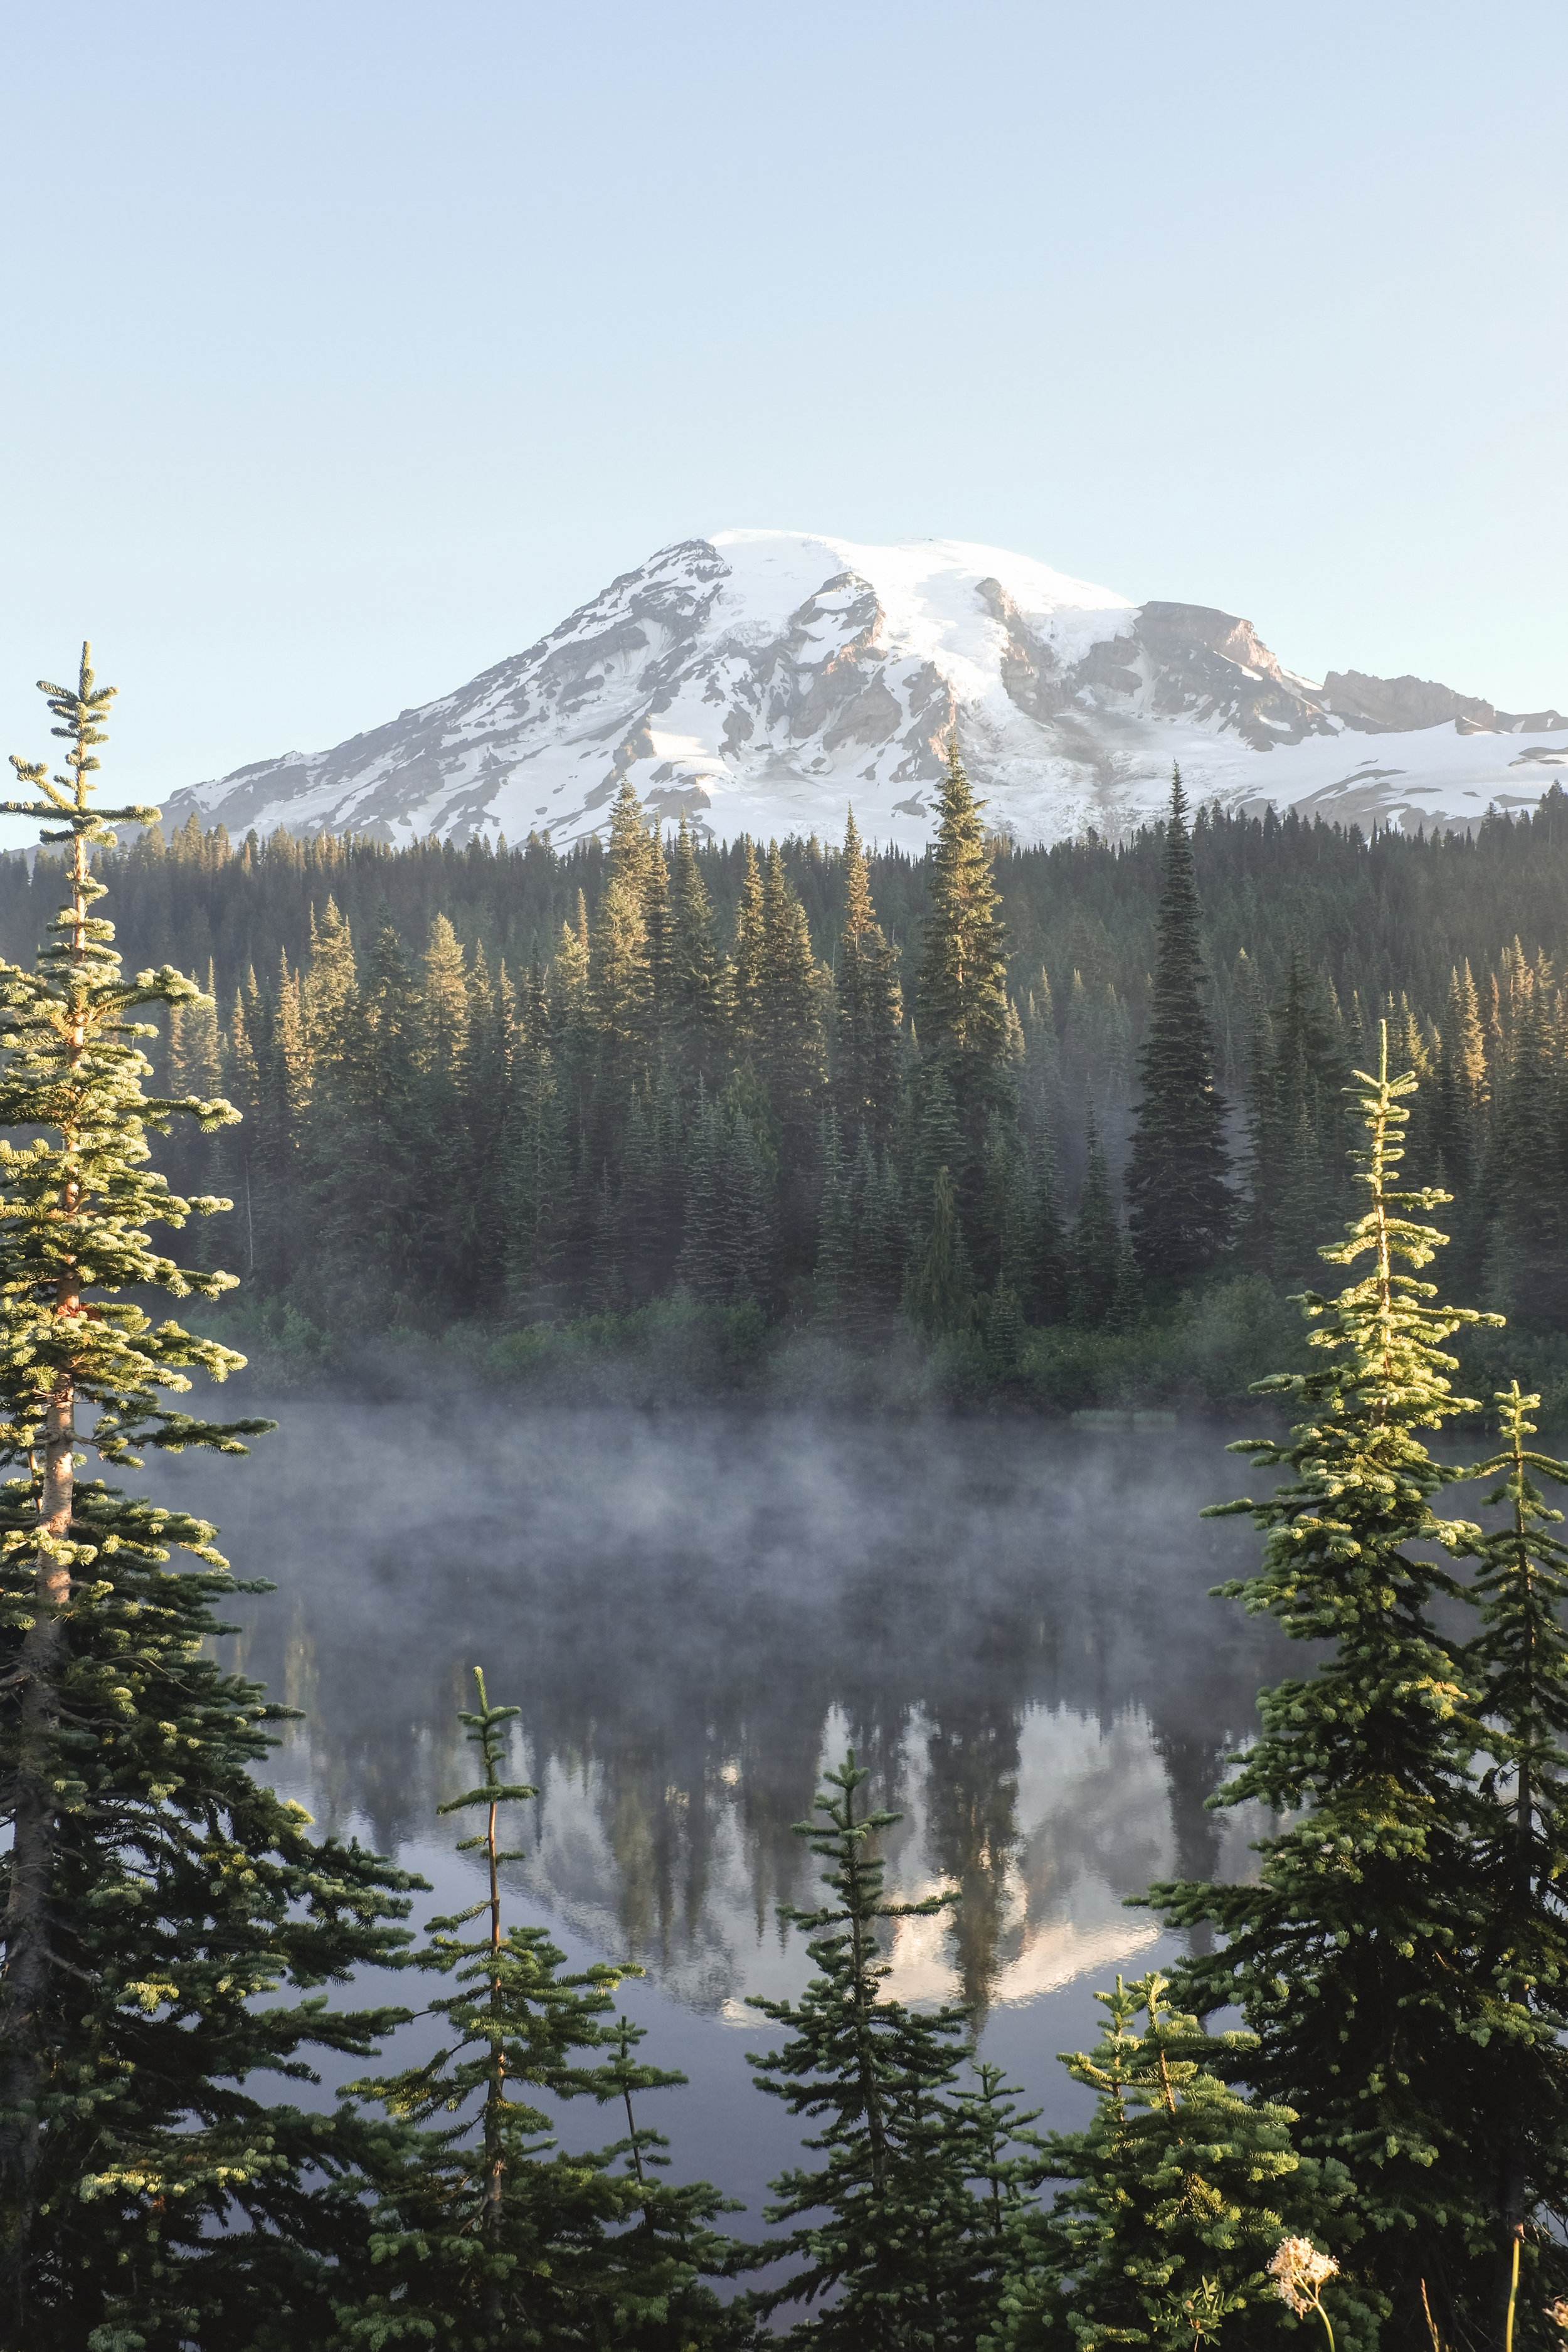 Early morning fog on the lake in Mt Rainier National Park, Washington